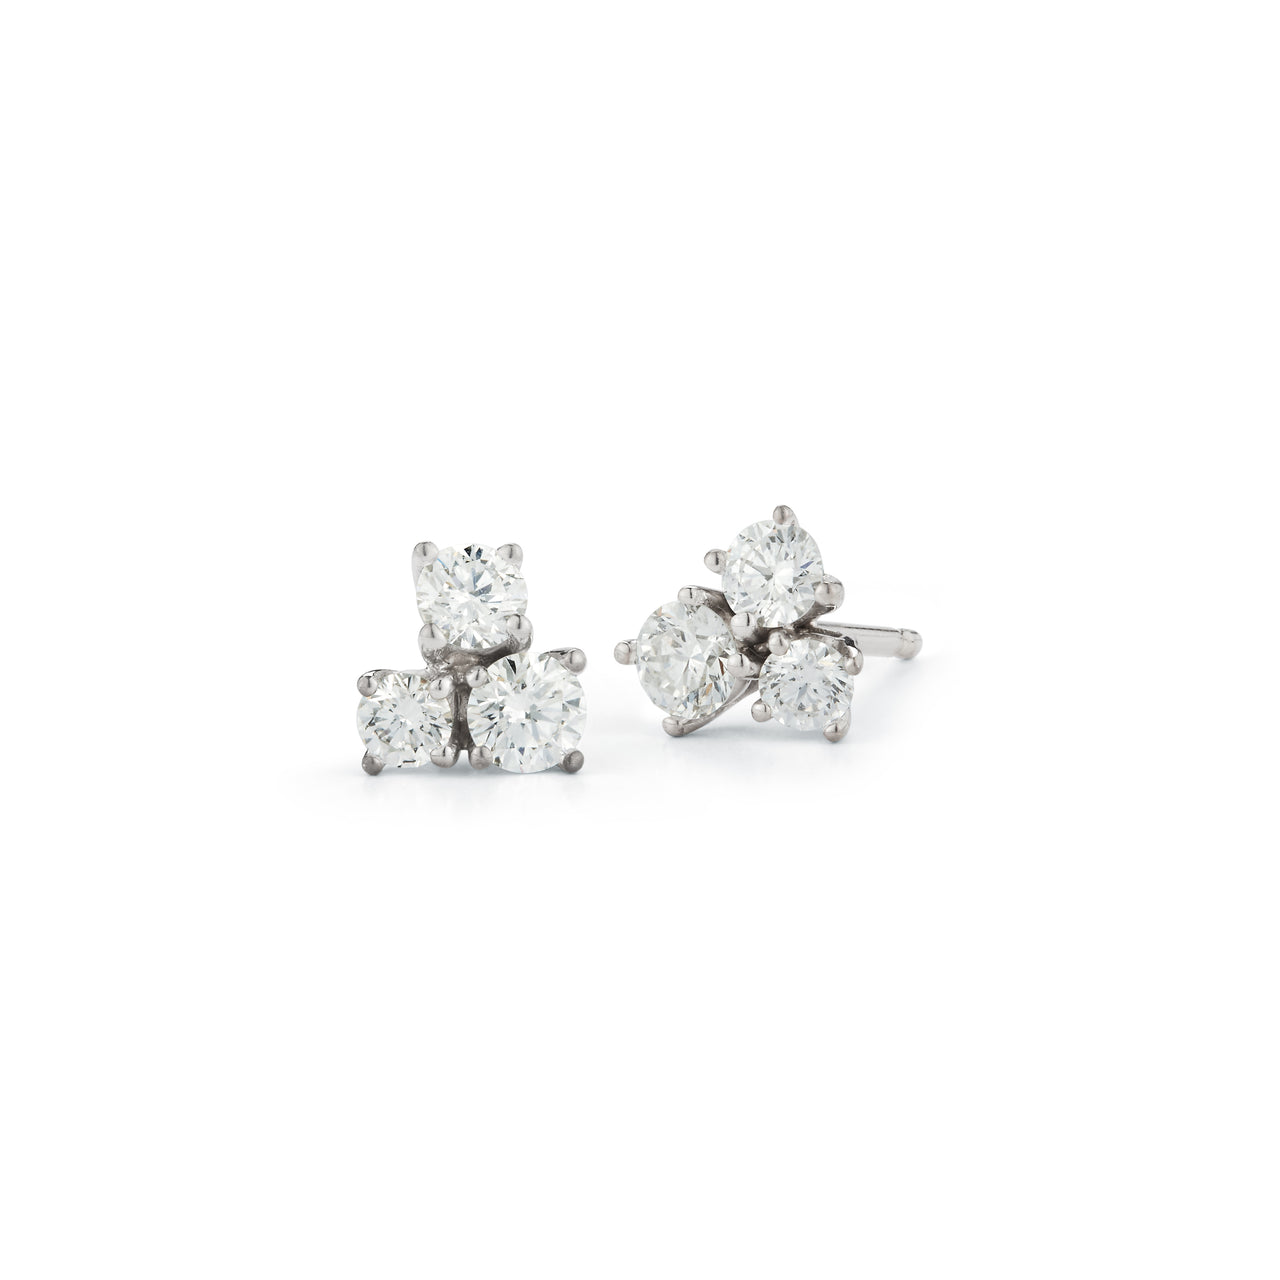 unique cluster 6mm diamond stud earrings in 18k white or yellow gold